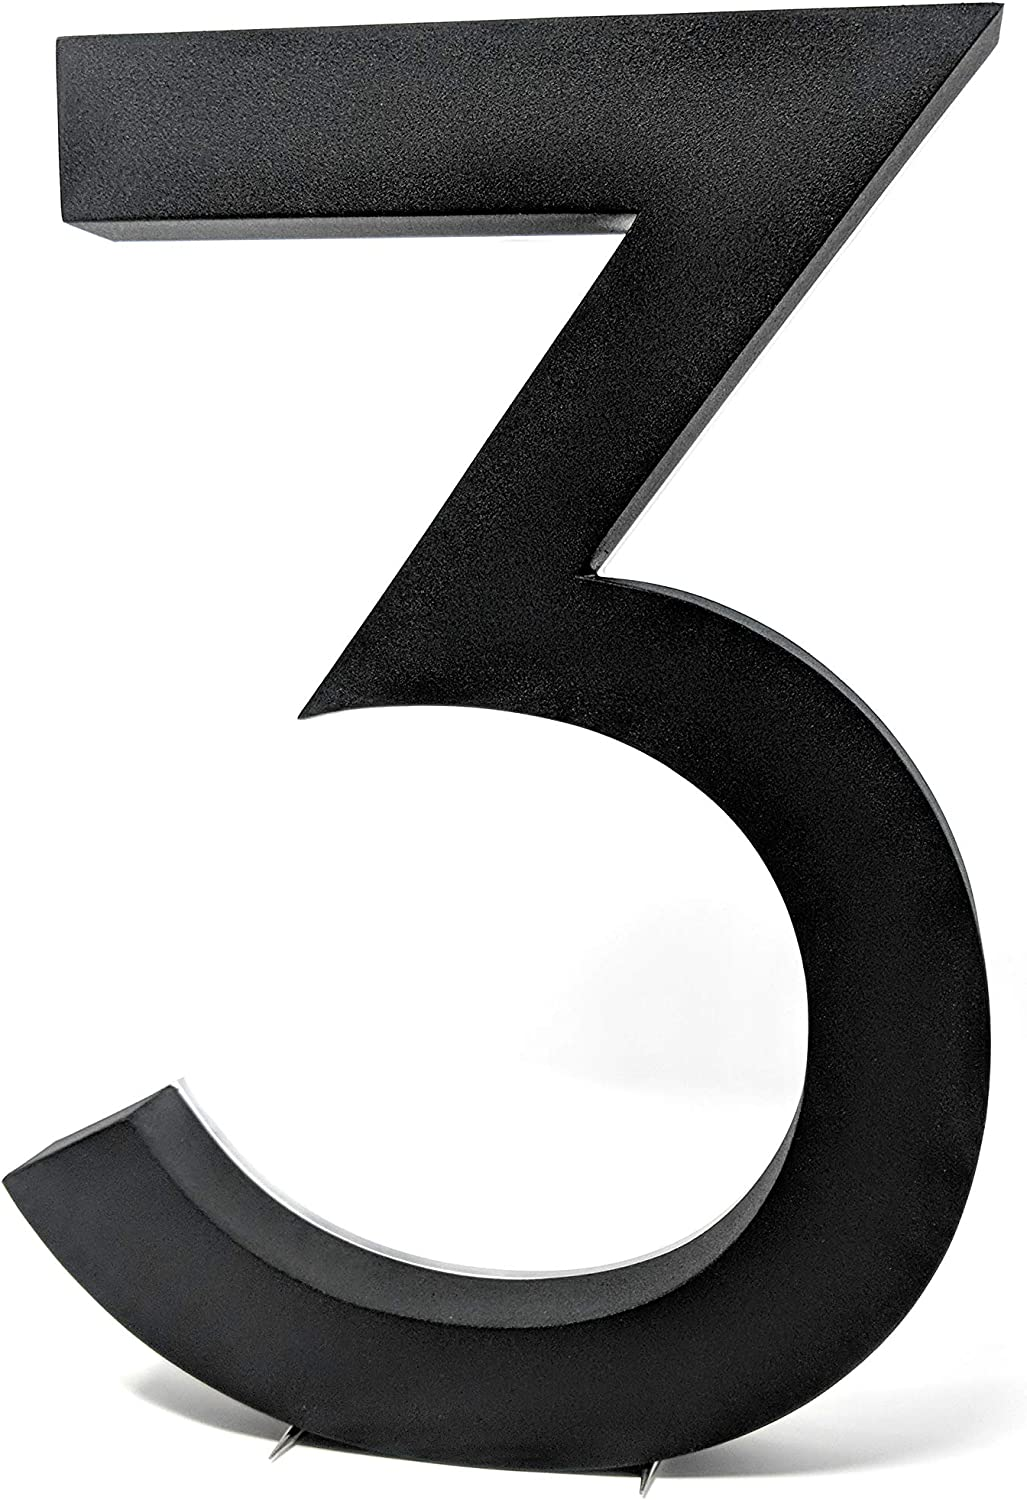 12 Inch Backlit LED House Numbers | Big, Modern Lights Address Signs for Homes | Soft, Exterior Glow | Stainless-Steel Black Finish | Weather Resistant, Durable | by JELSCO (3, Neutra Black)